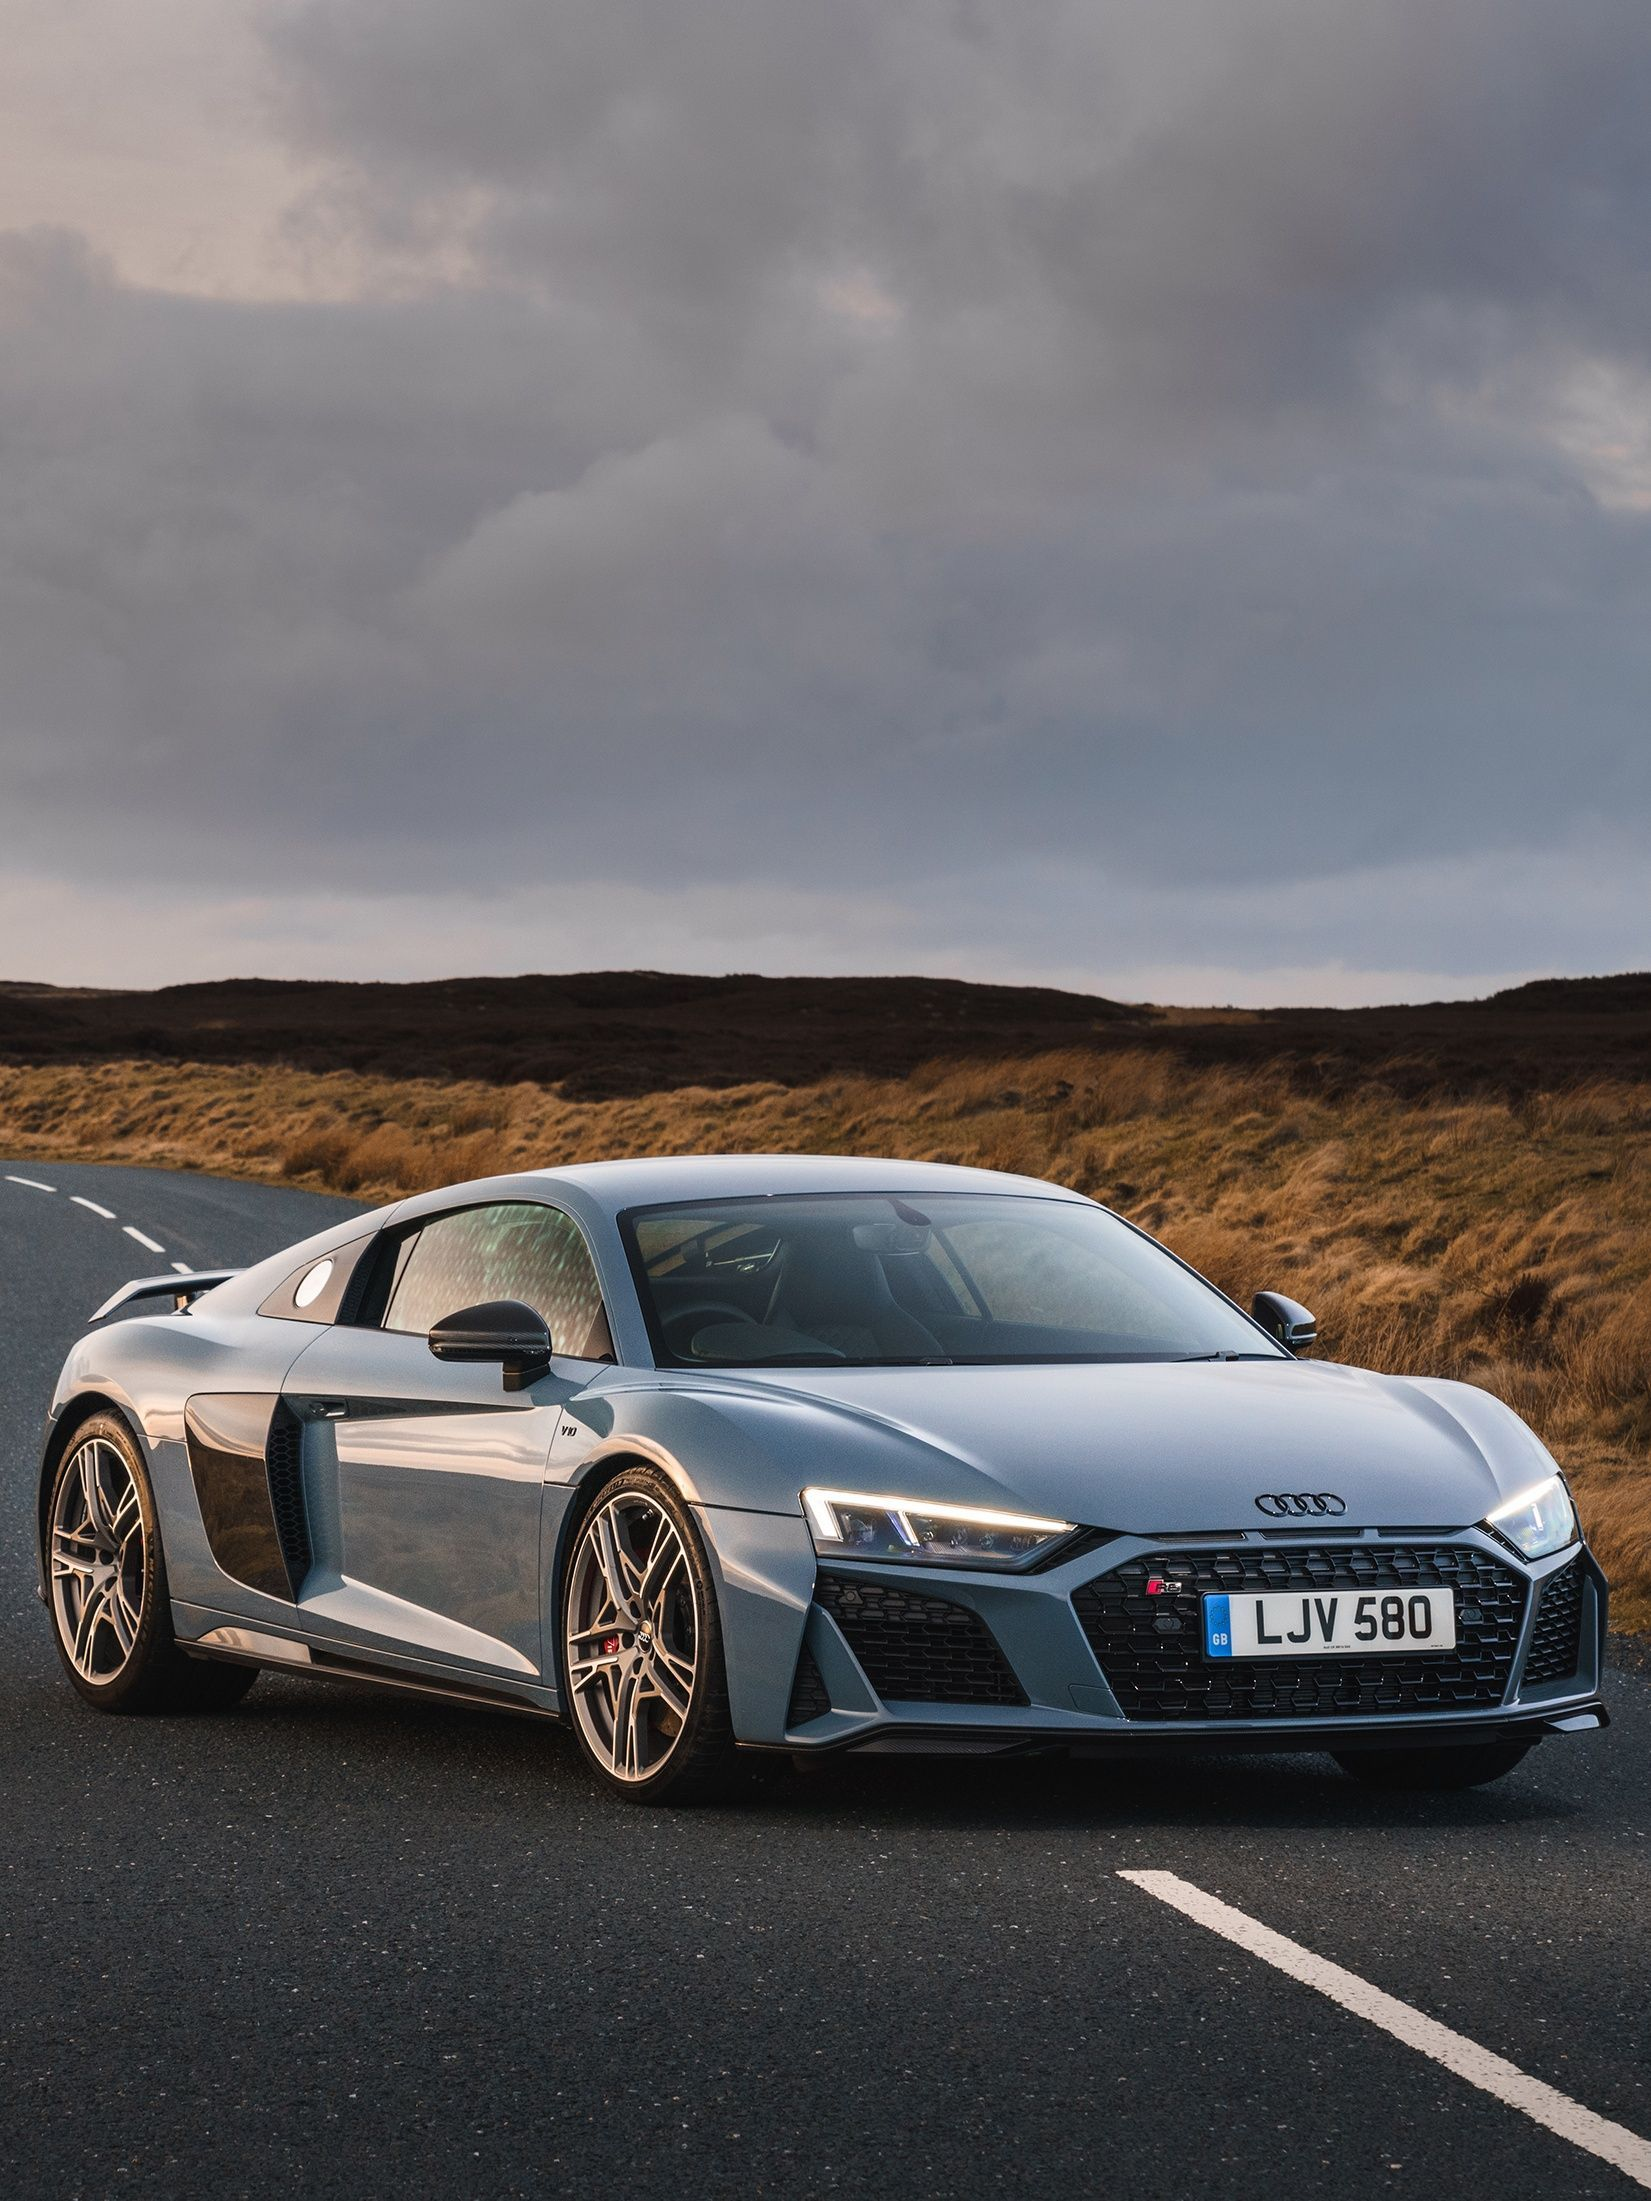 2019 Audi R8 V10 Quattro Performance Coupe The Man Audir8 In